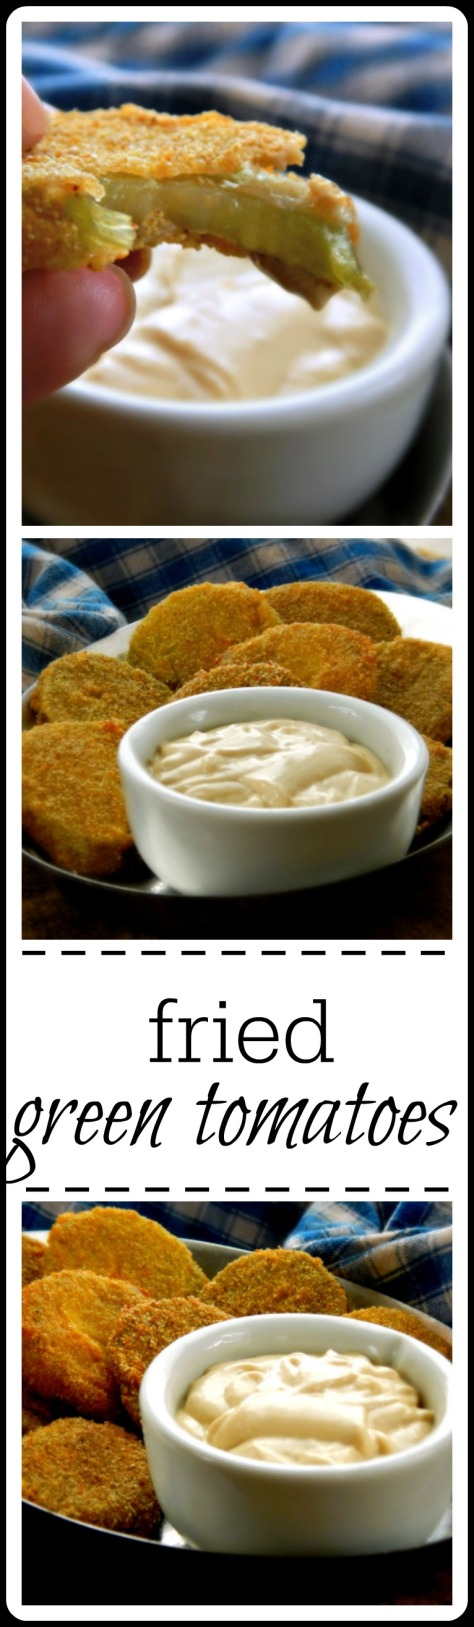 Fried Green Tomatoes with Spicy Remoulade Sauce